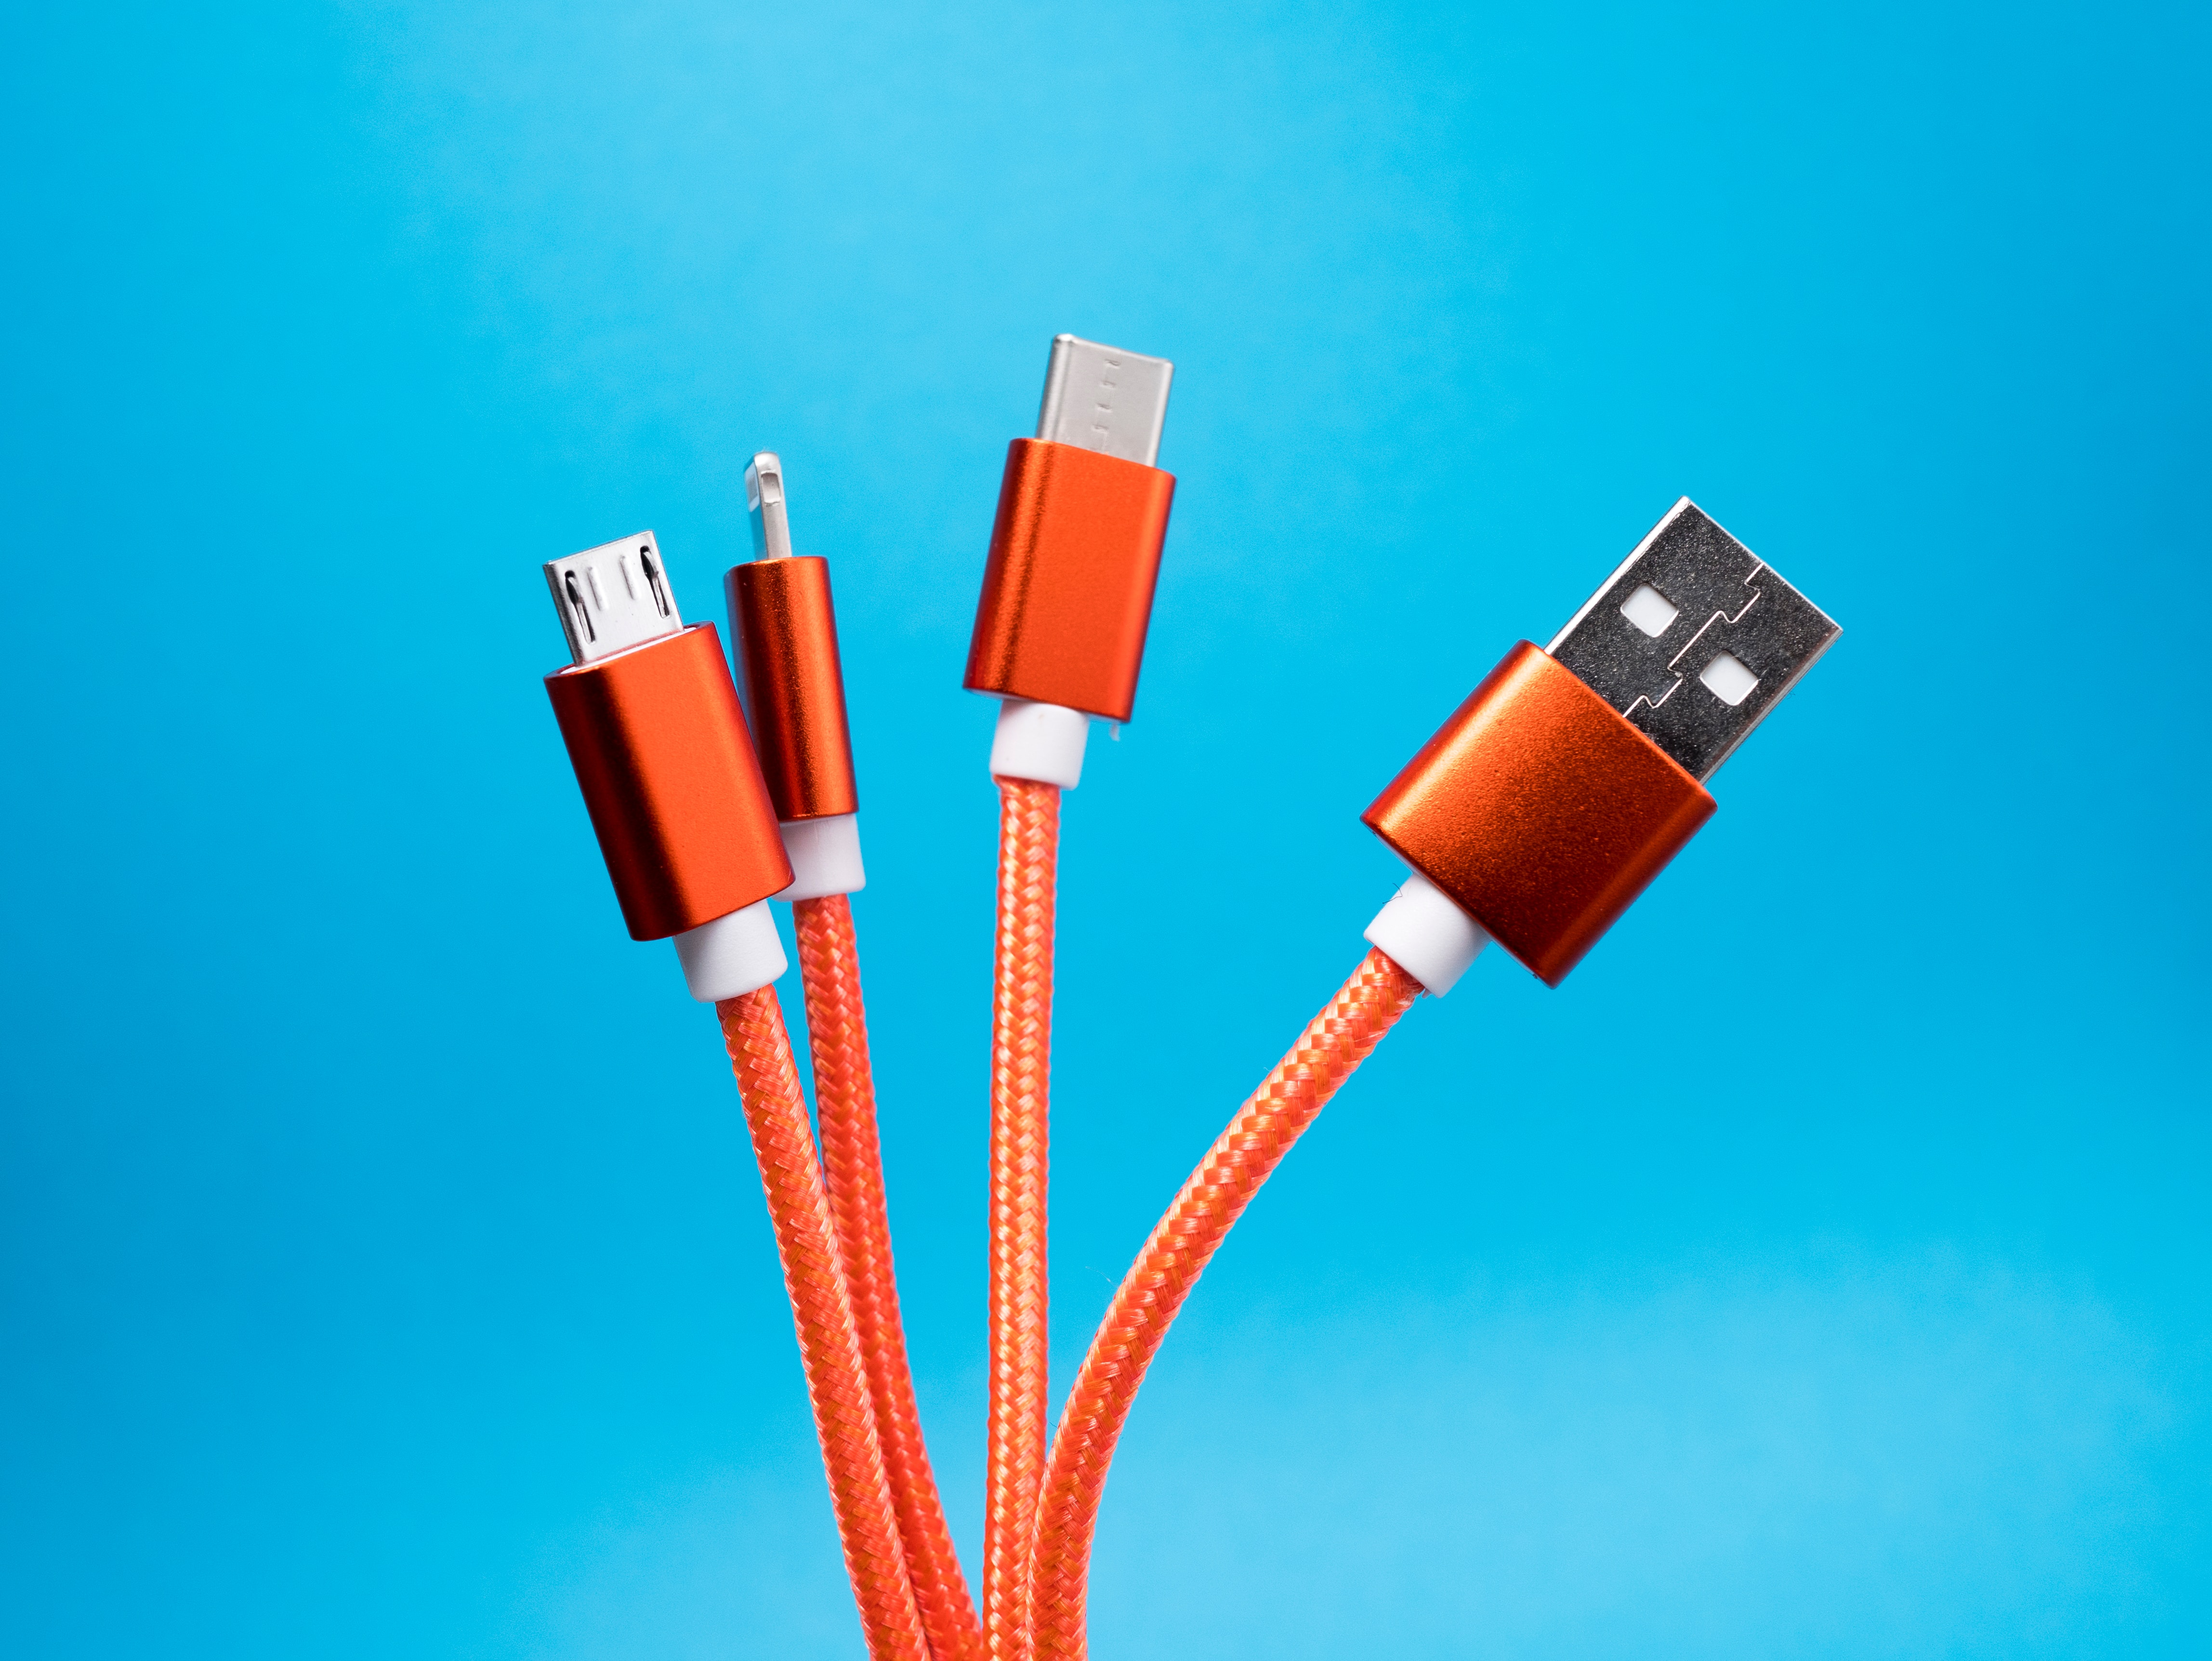 Orange charger cord promotional item.